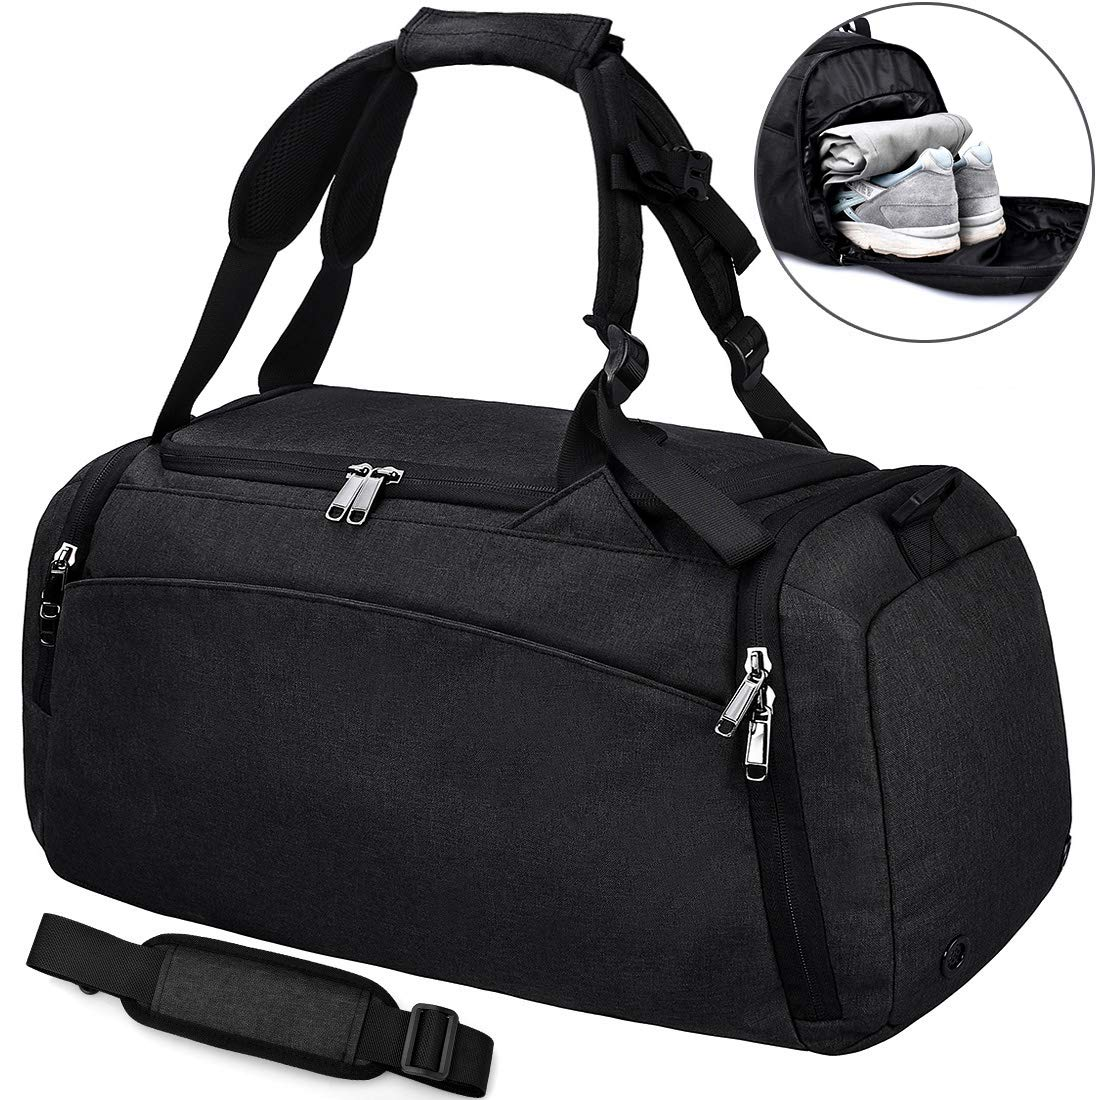 NEWHEY Sports Gym Duffel Bag with Shoe Compartment Waterproof Travel  Holdall Large Sports Bag for Men Women 40 L 88bd8be3b4